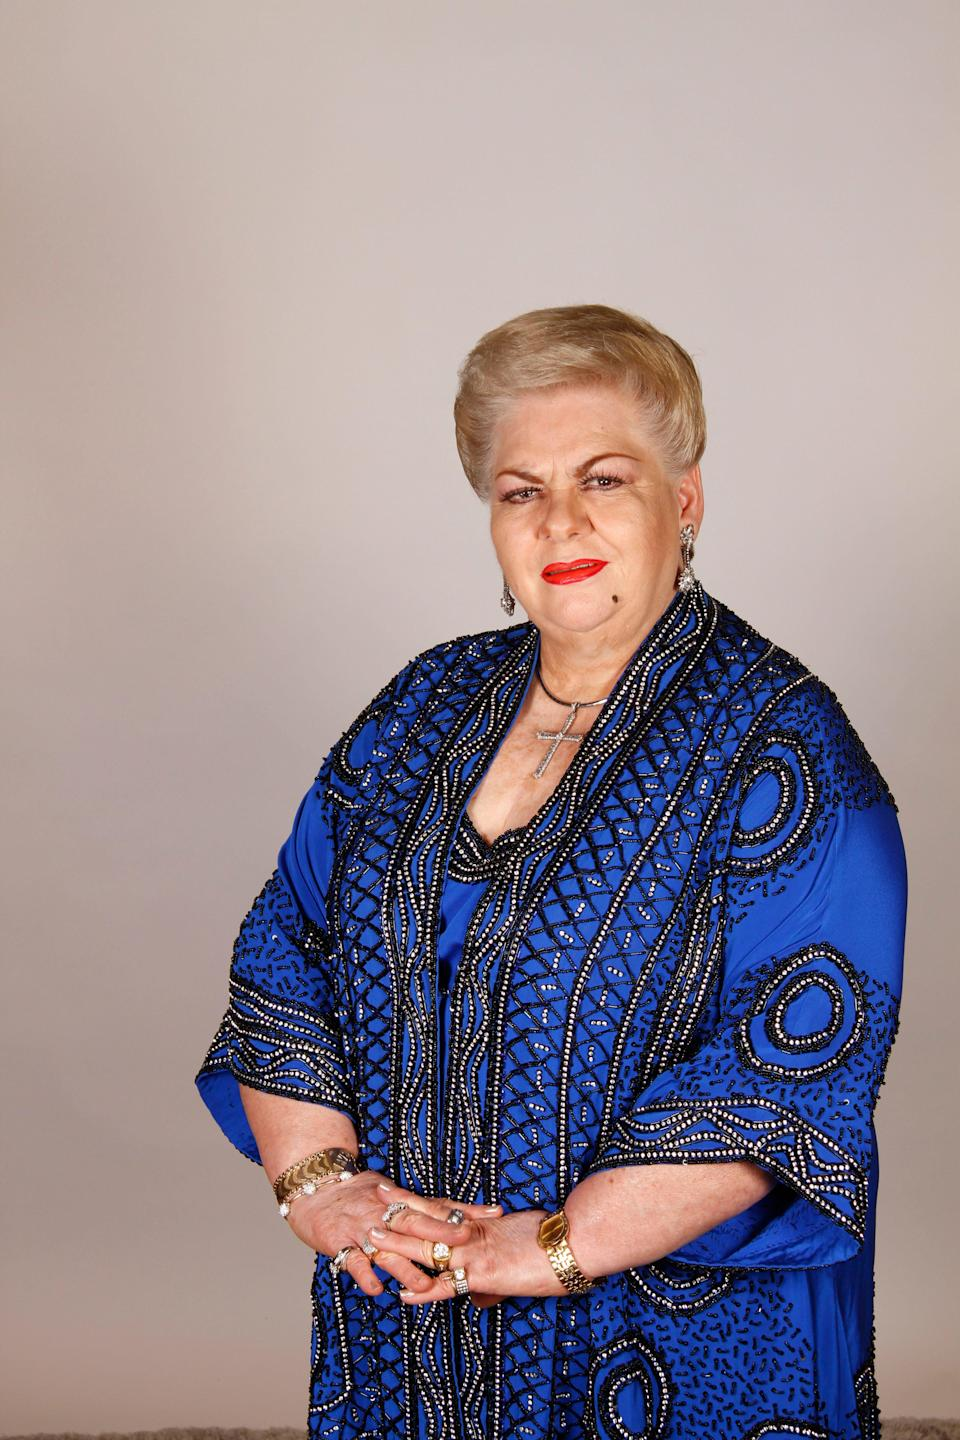 Paquita la del BarrioPaquita, the Grammy-nominated Mexicansinger, born Francisca Viveros Barradas, started her career in Mexico City in the '70s performing at local bars and restaurants.